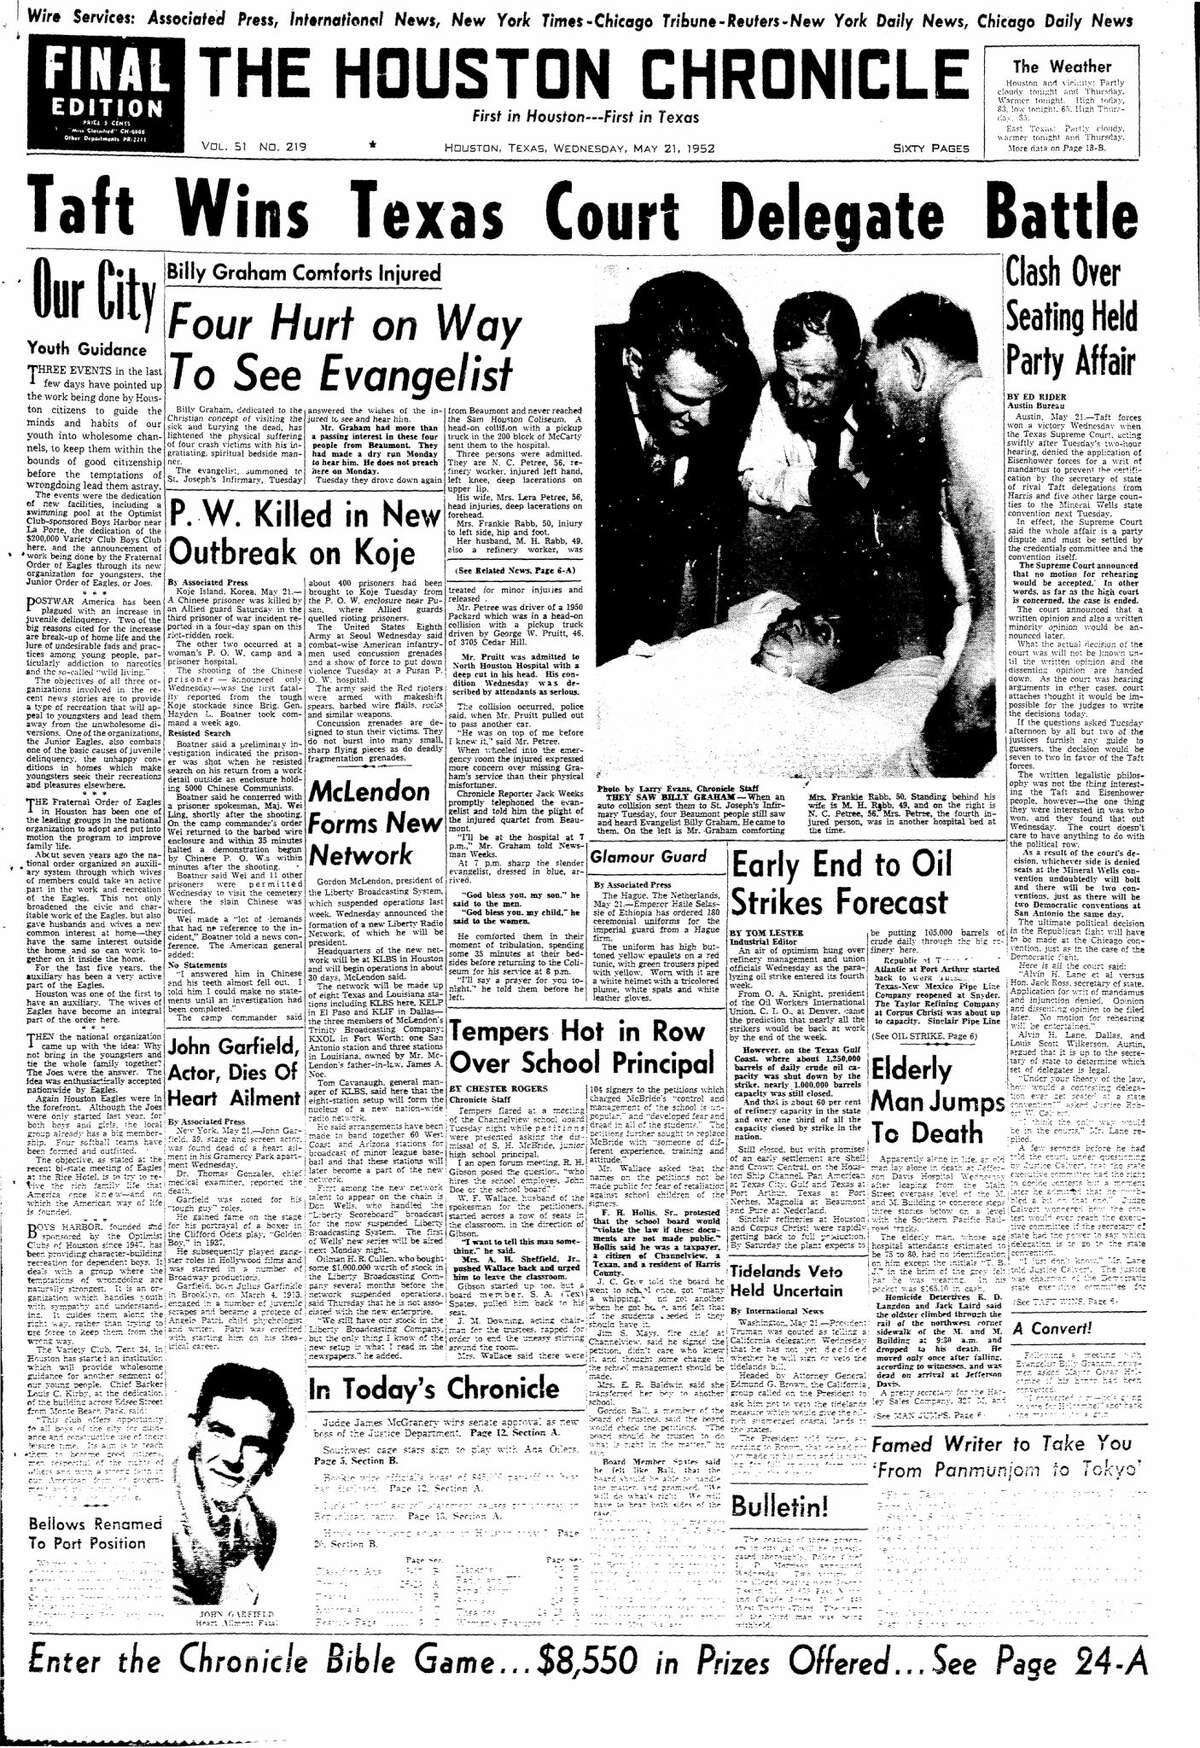 Houston Chronicle front page from May 21, 1952.